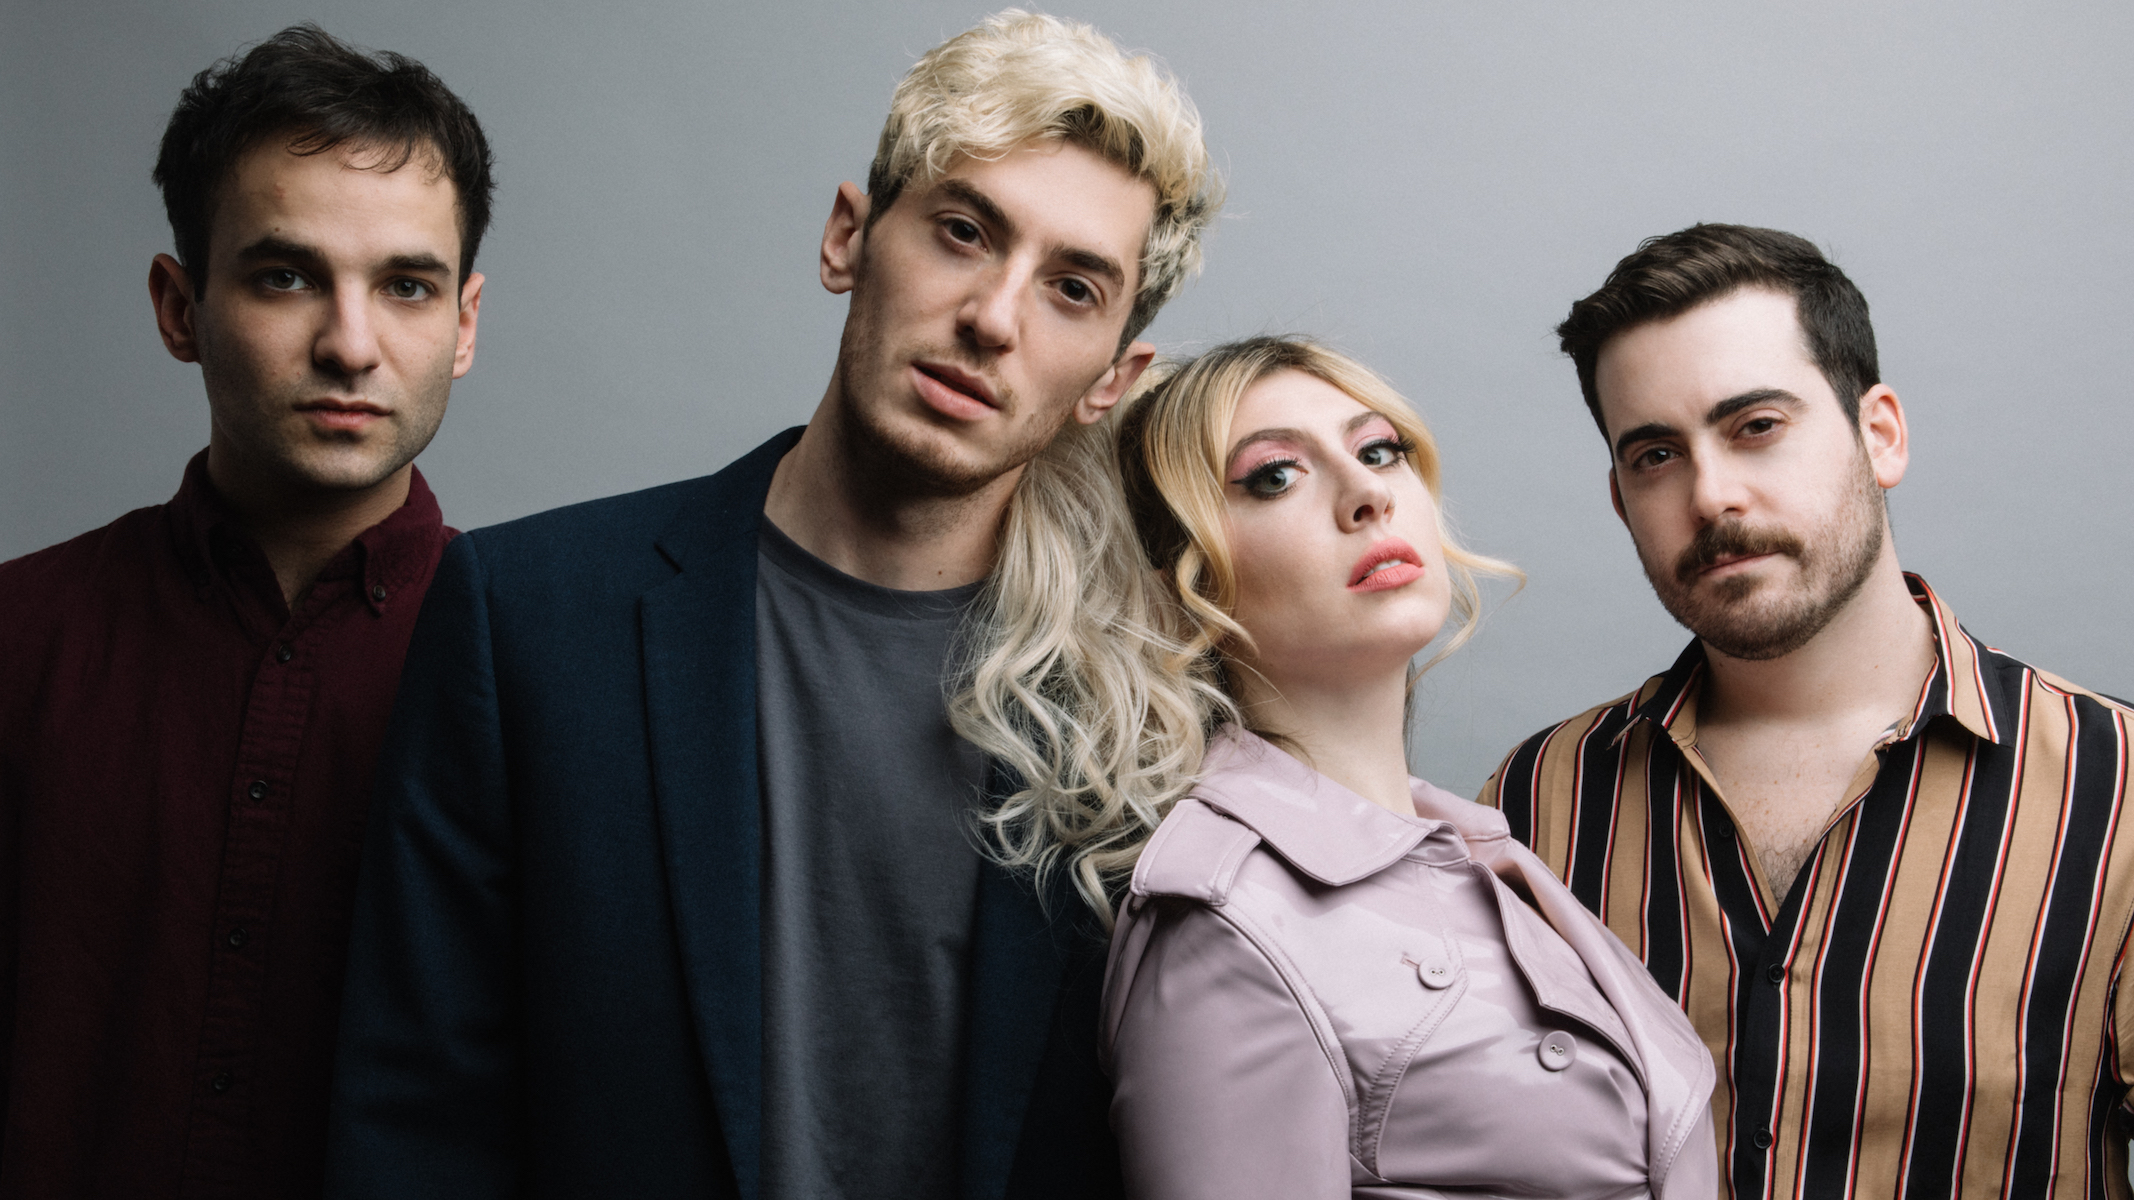 The Healing Powers of Charly Bliss' Invigorating Pop